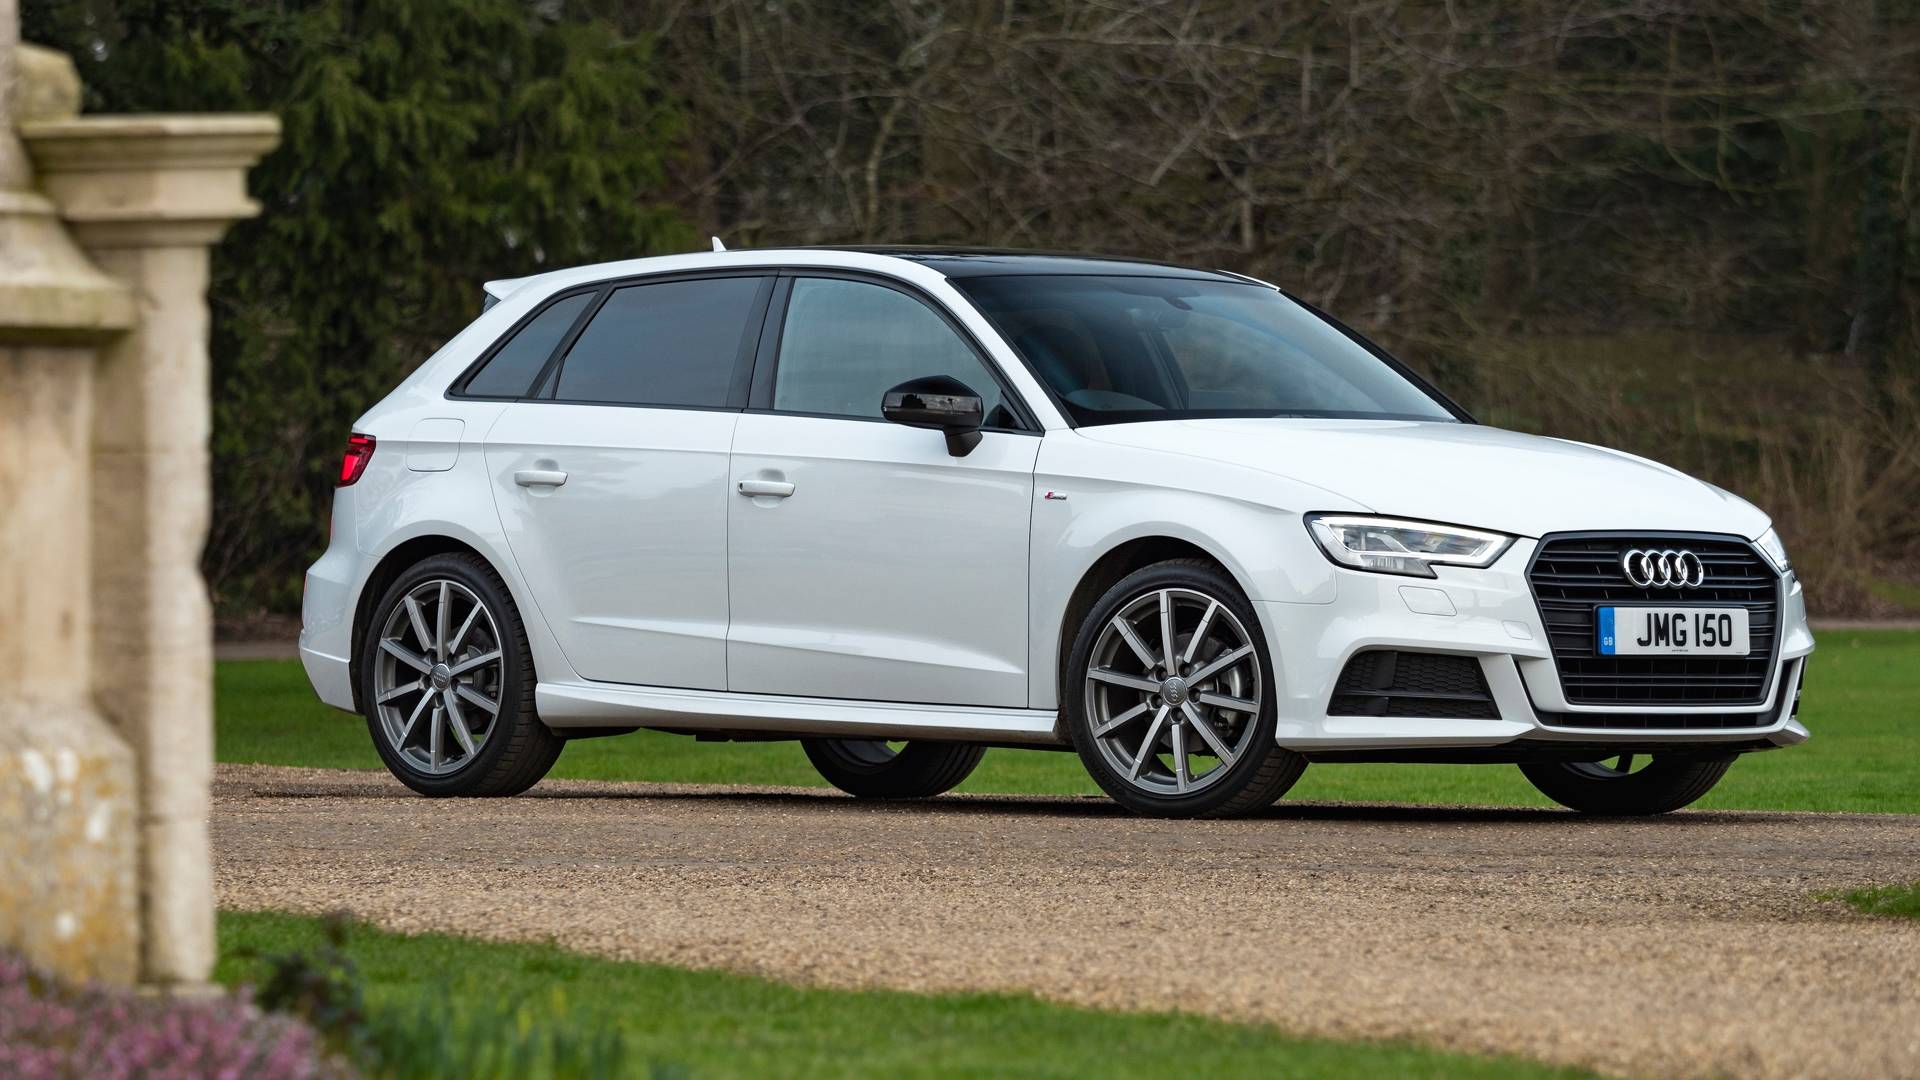 Audi A Sportback TFSI First Drive The New TDI - Audi a3 hatchback